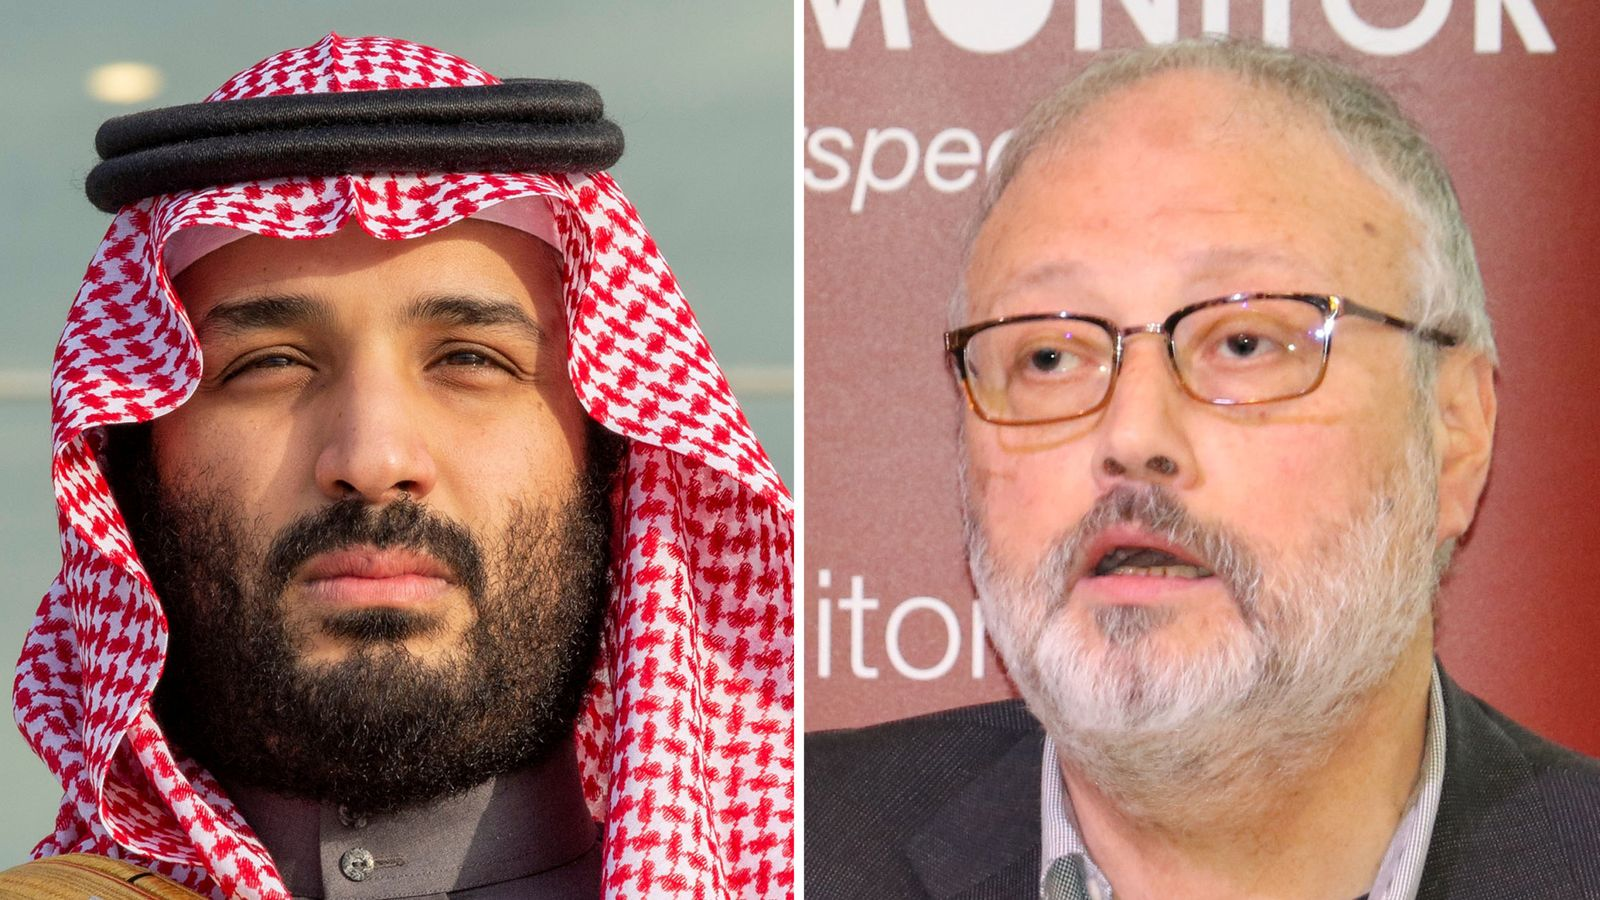 Jamal Khashoggi: US intelligence report says Mohammed bin Salman approved operation to 'capture or kill' journalist